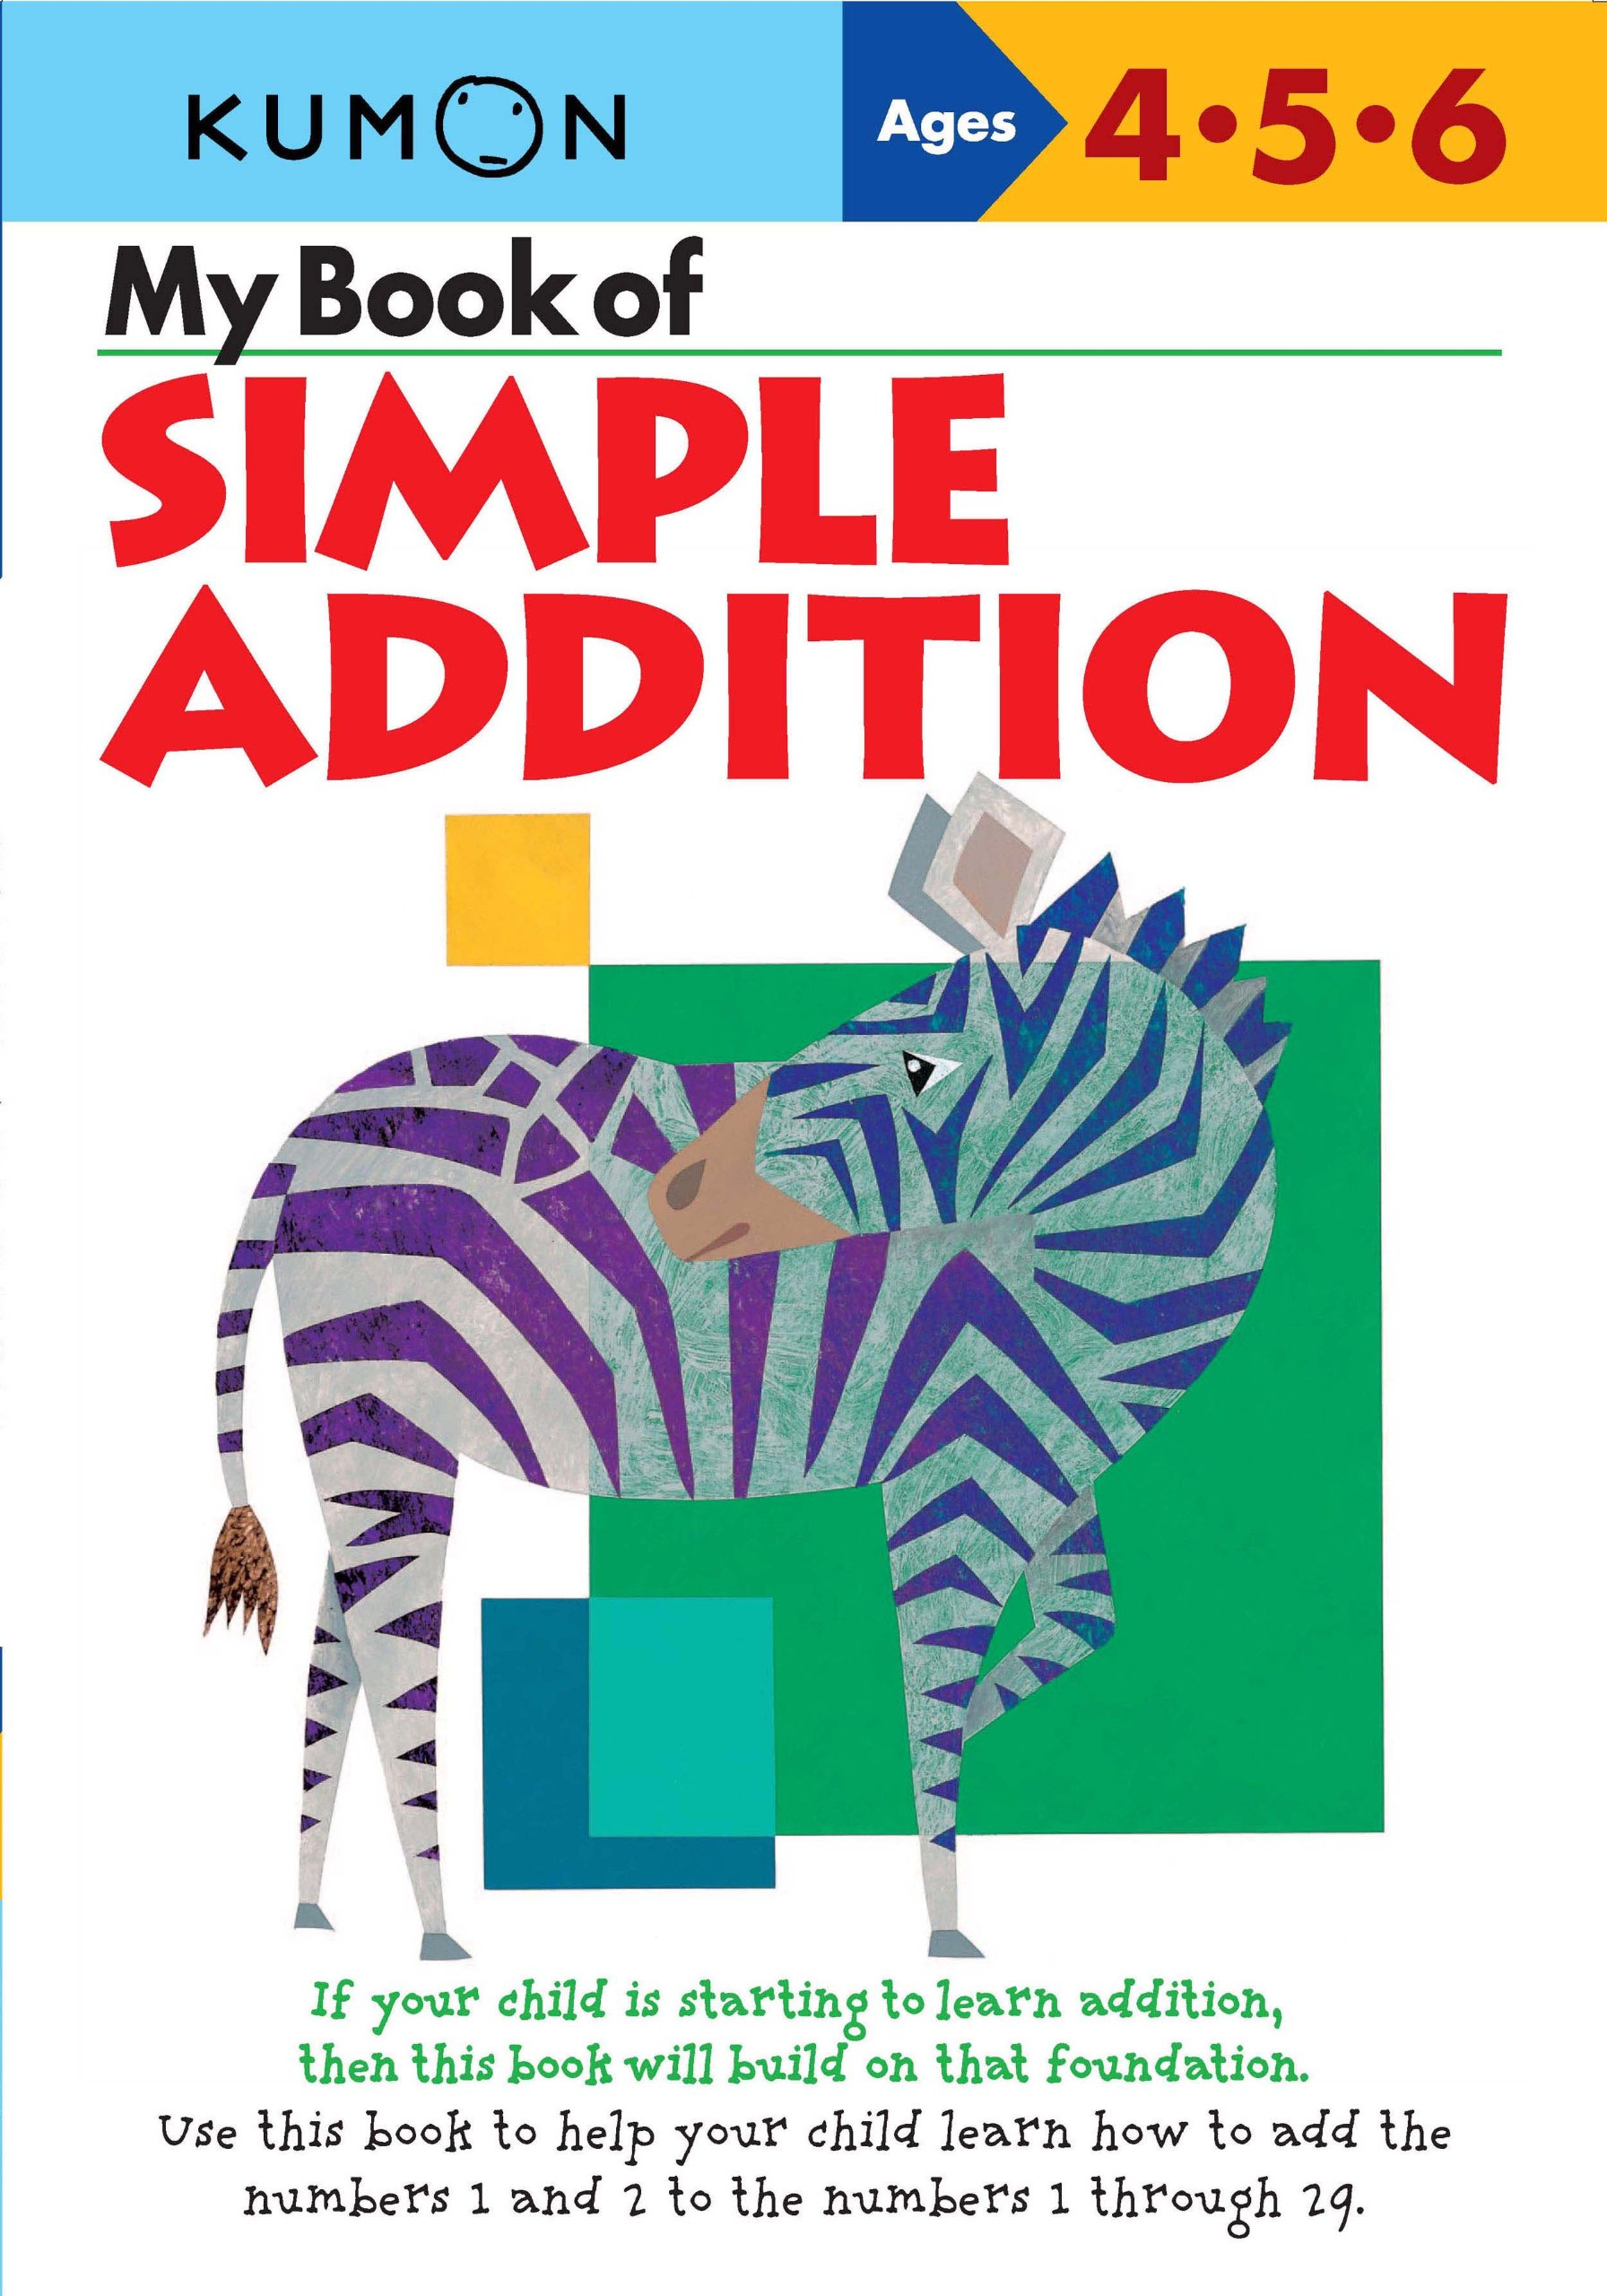 My Book of Simple Addition: Ages 4-5-6 (Inglés) Tapa blanda – 1 may 2005 Kumon Publishing KUMON PUB NORTH AMER LTD 1933241004 1993268